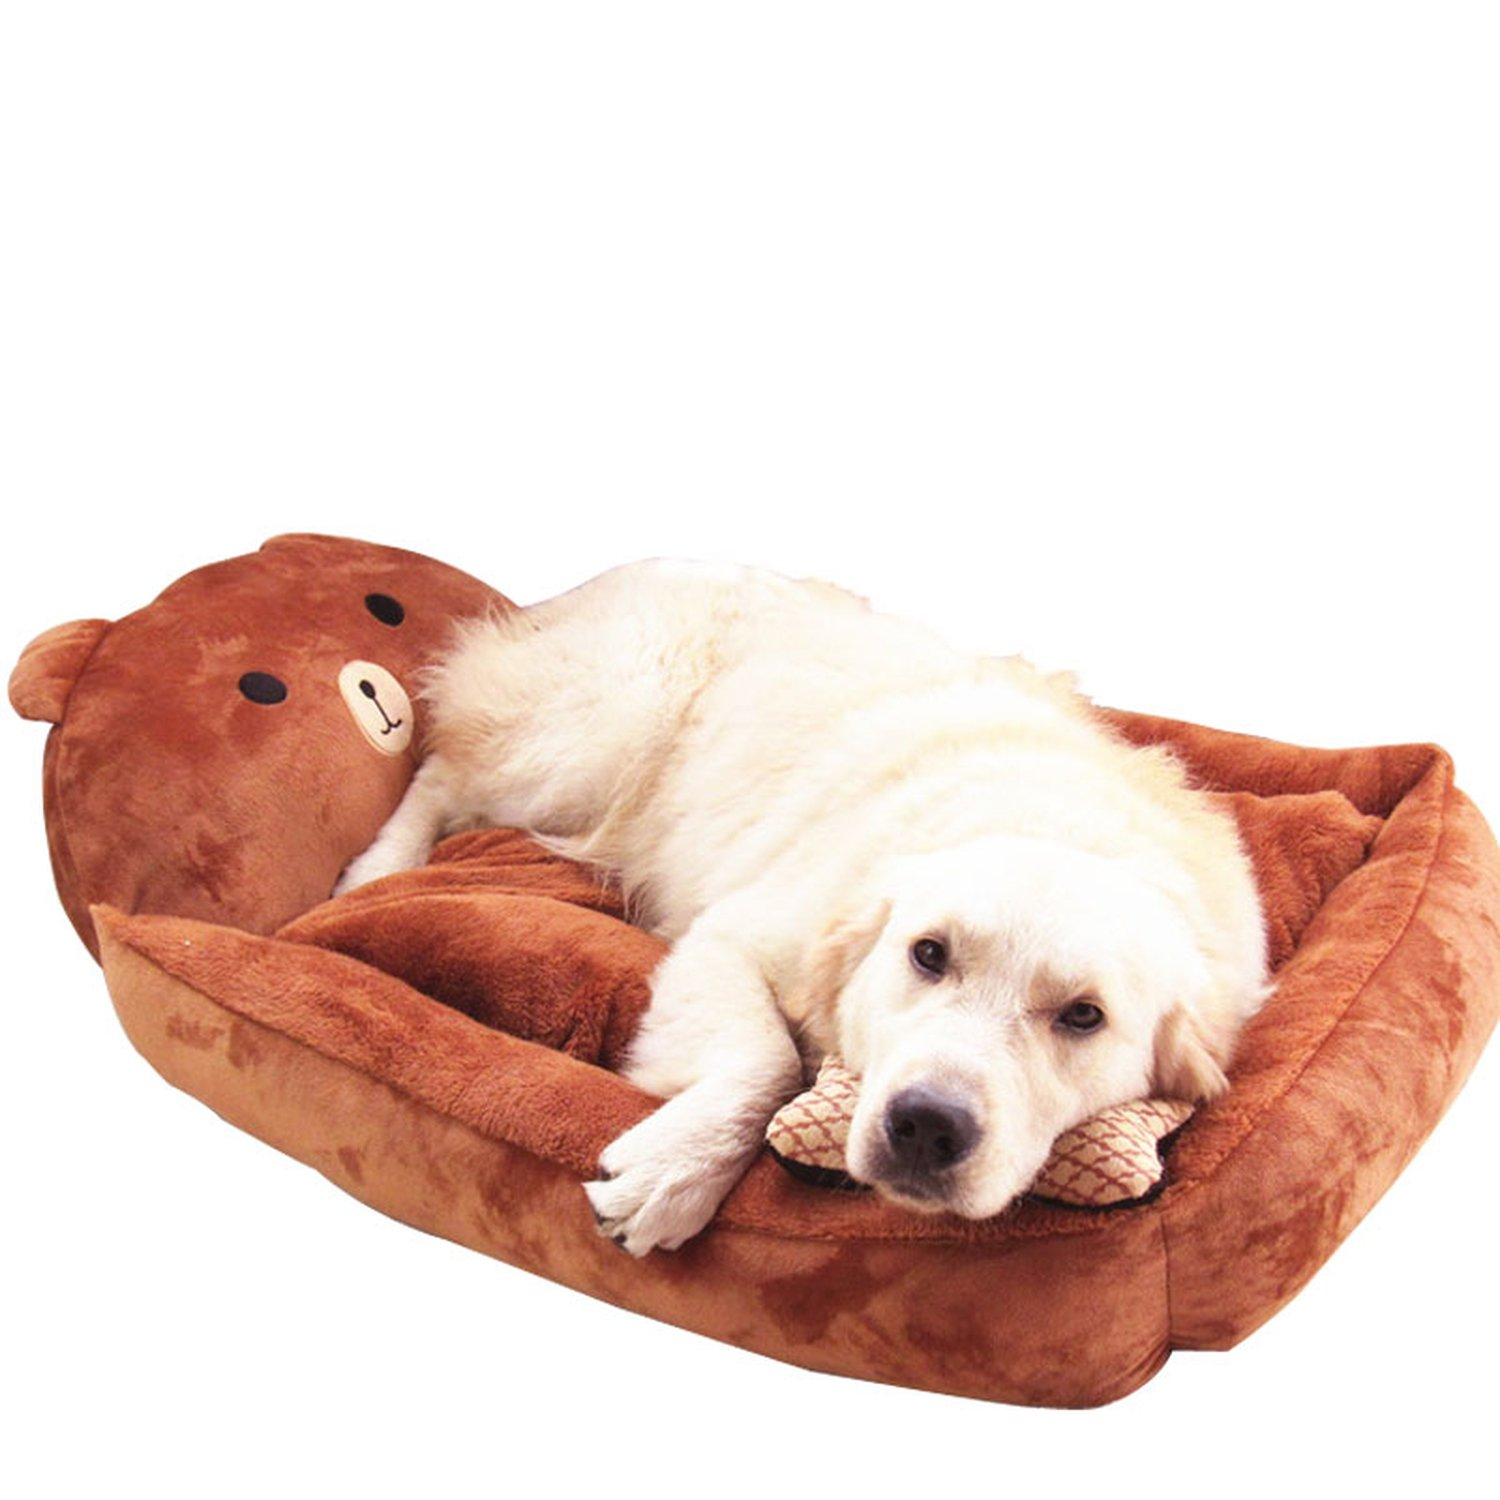 Forme de l'animal Chaud Kennel Chat Chien Maison Pet Lits Mats Teddy Canapés Maison des Animaux Nest, Rose Rouge, 70X55X15Cm Kidly